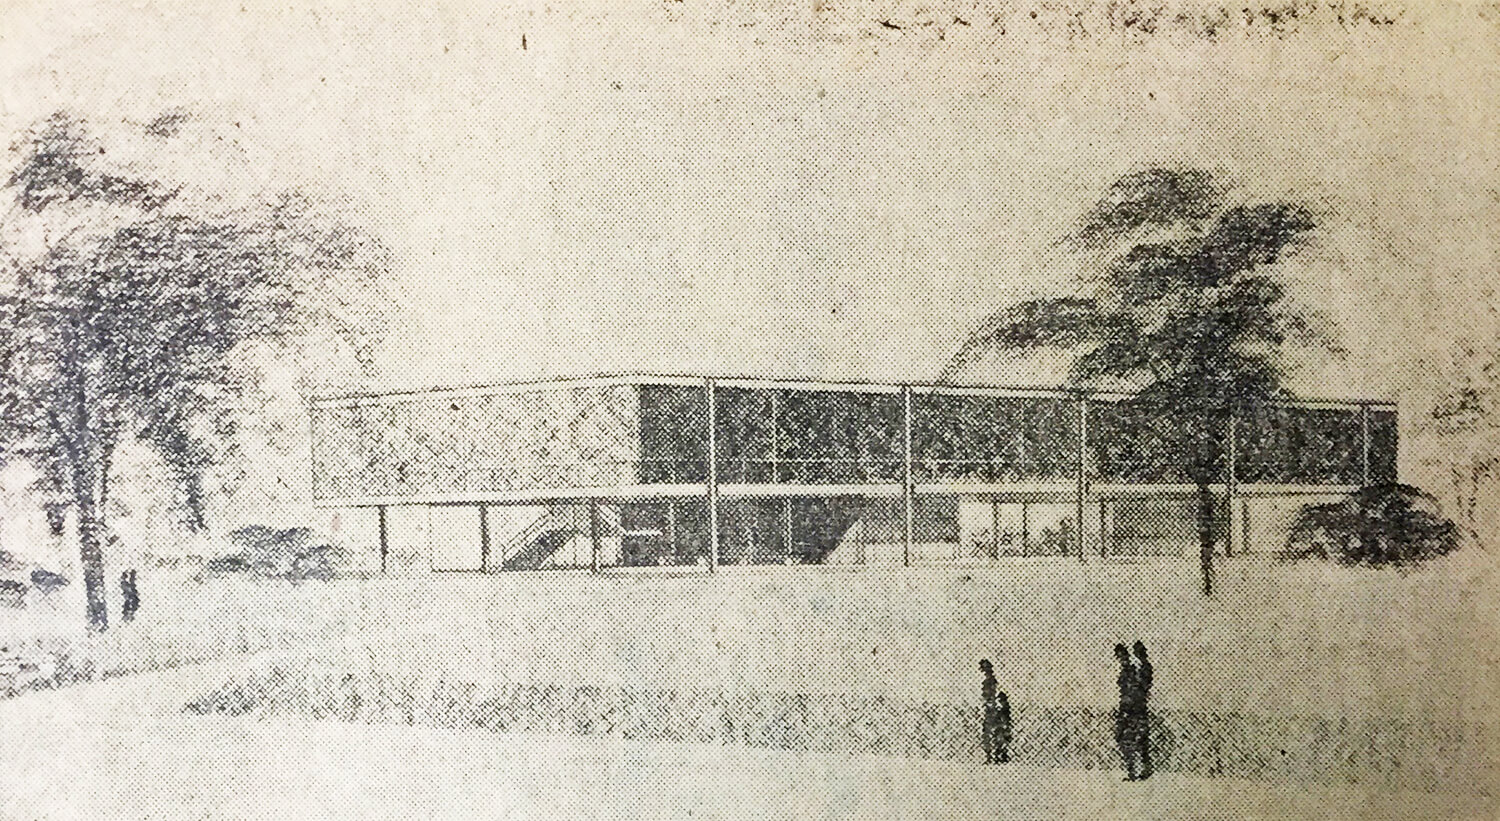 Sketch of a glass-clad floor elevated over a plaza